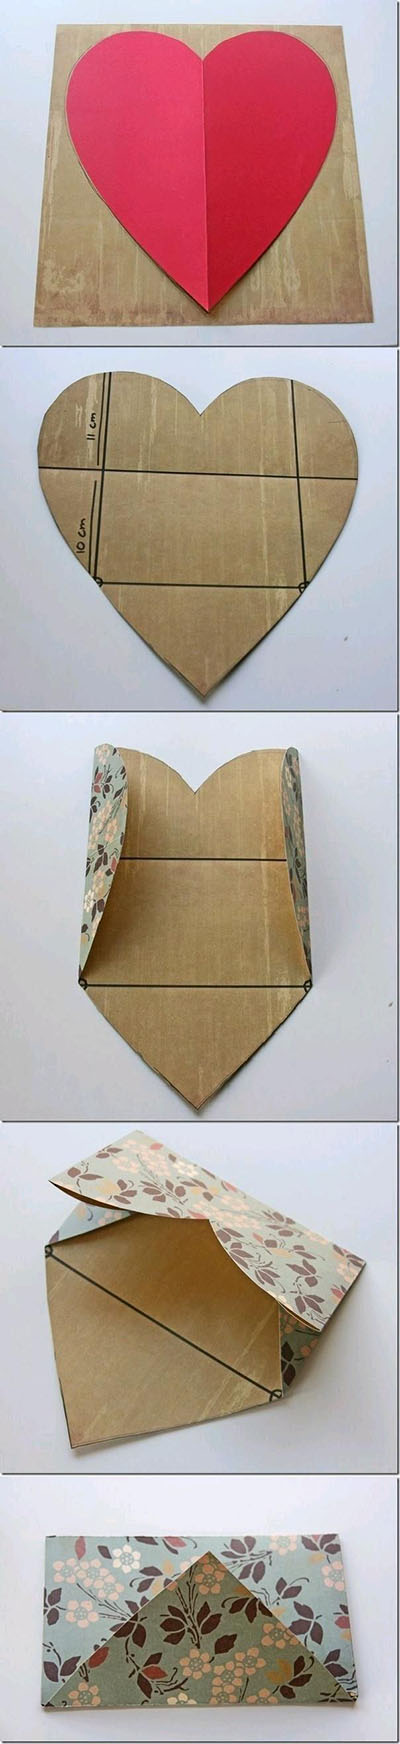 10 DIY Envelope from a Heart bfbb1e